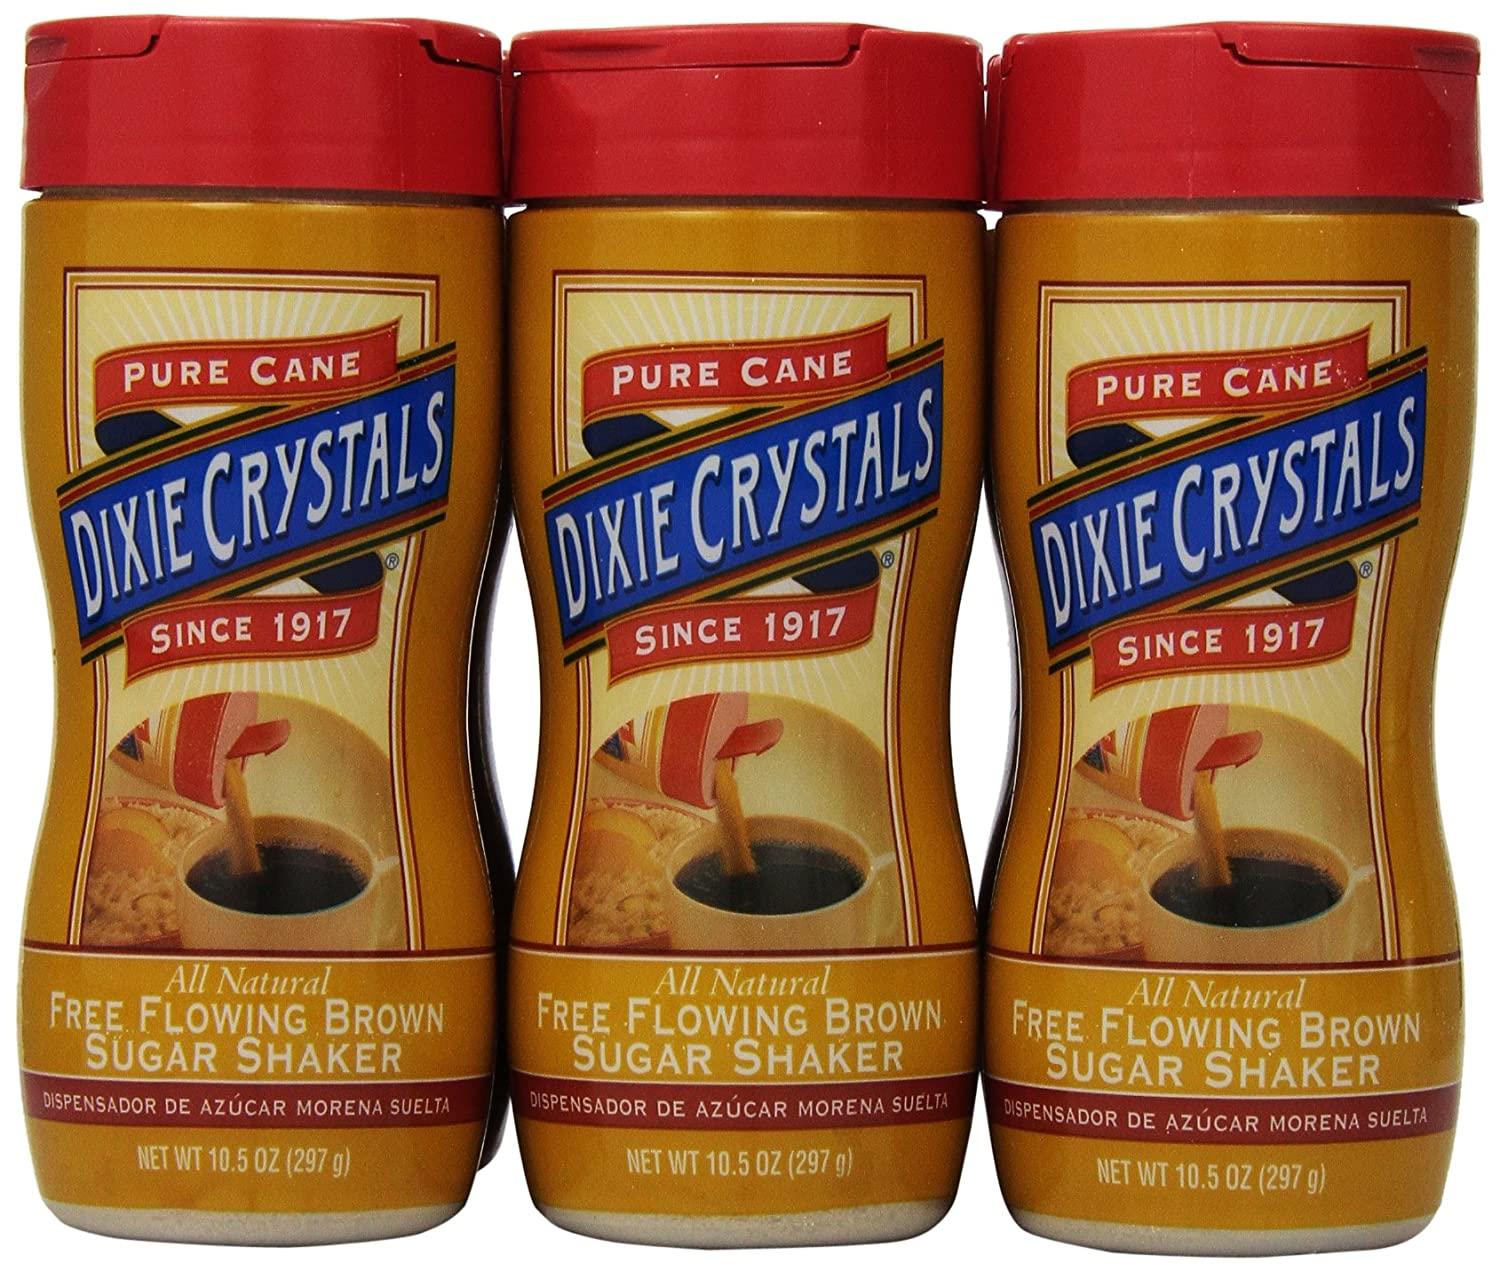 Amazon.com : Dixie Crystals Free Flowing Brown Sugar Shaker, 10.5-Ounce (Pack of 6) : Grocery & Gourmet Food